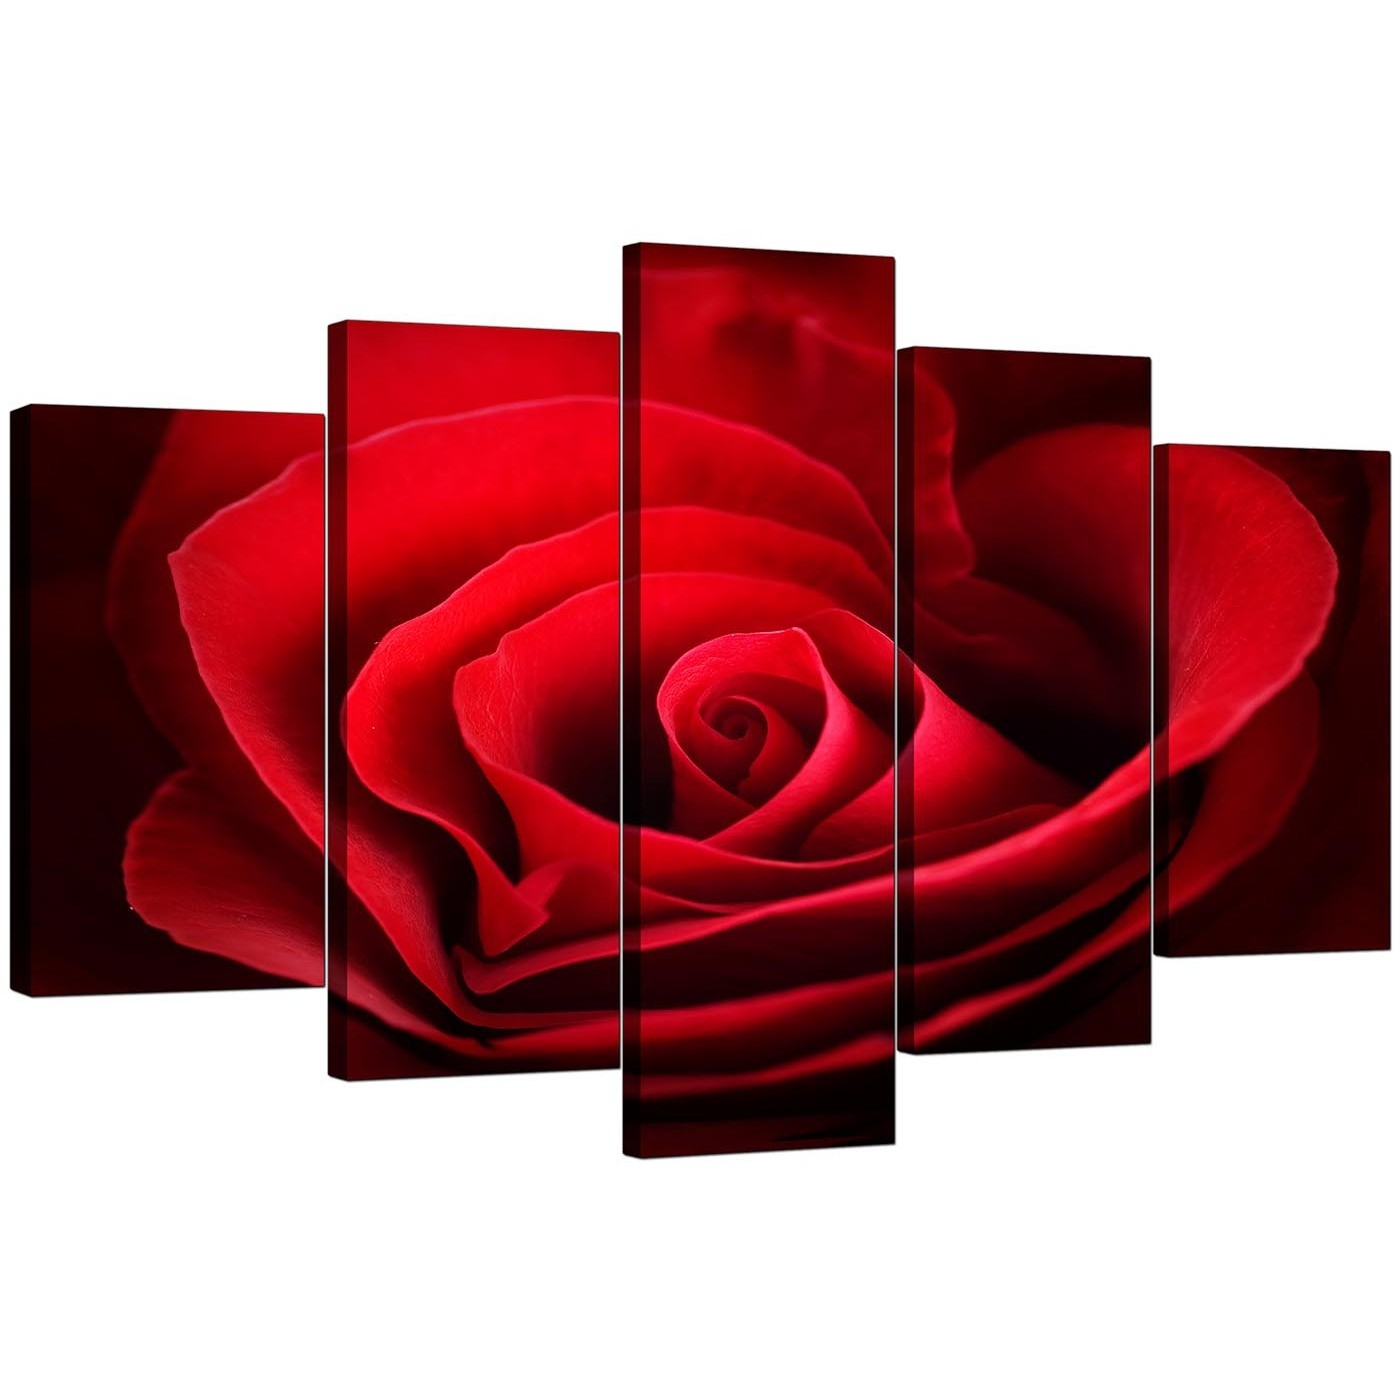 Extra Large Rose Canvas Wall Art 5 Panel In Red Regarding 2018 Red Canvas Wall Art (View 9 of 15)